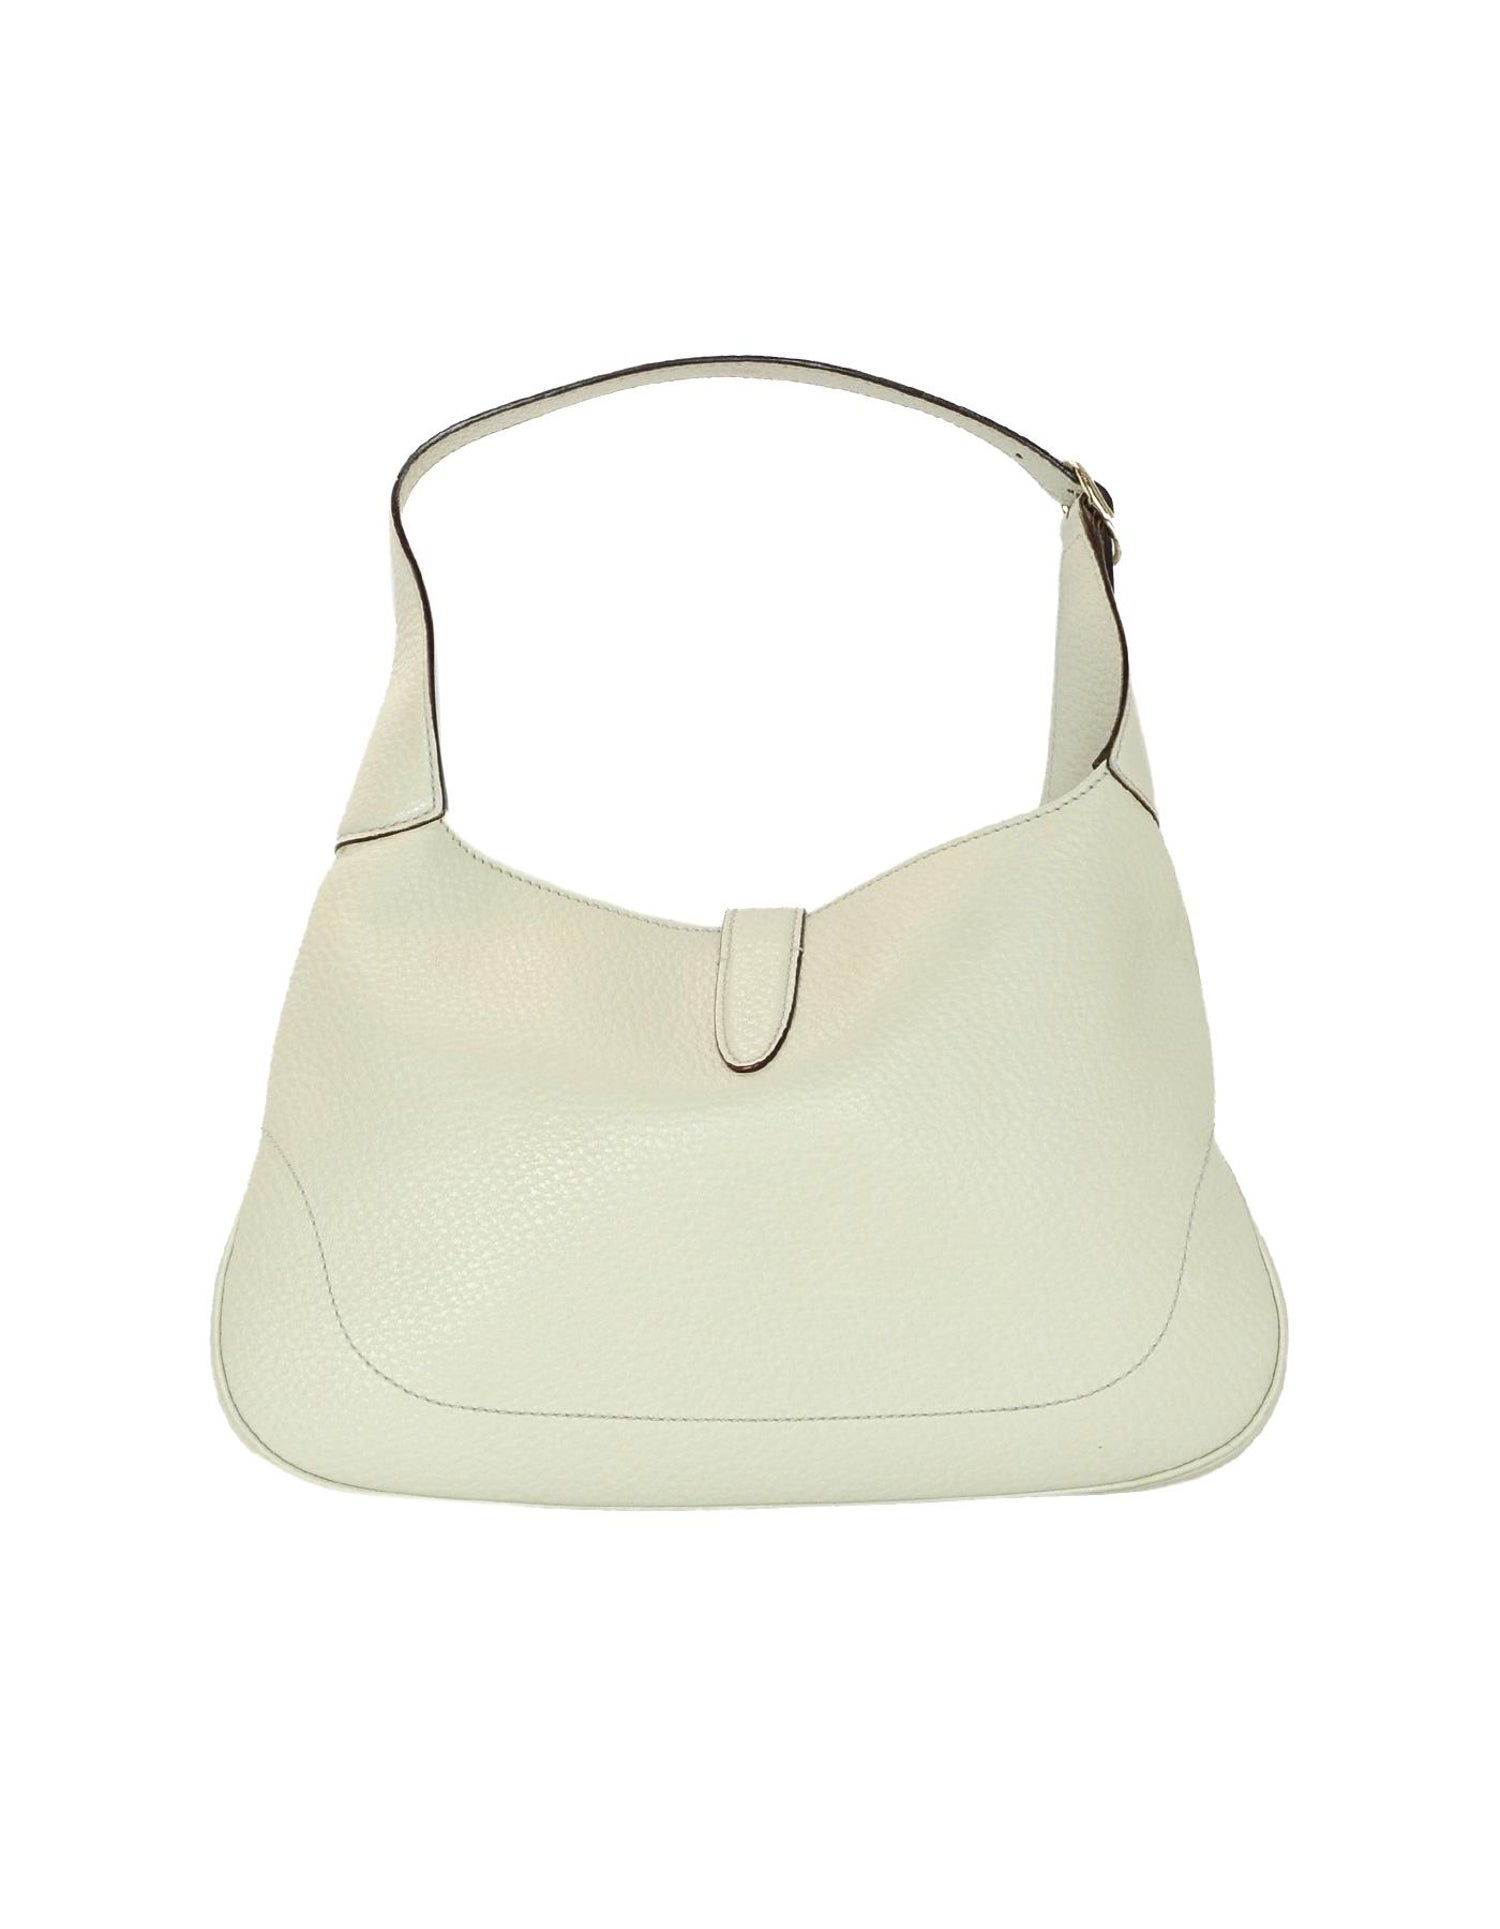 bff89b66b7d Gucci Cream Pebbled Leather Jackie O Bouvier Hobo Bag W  DB For Sale at  1stdibs